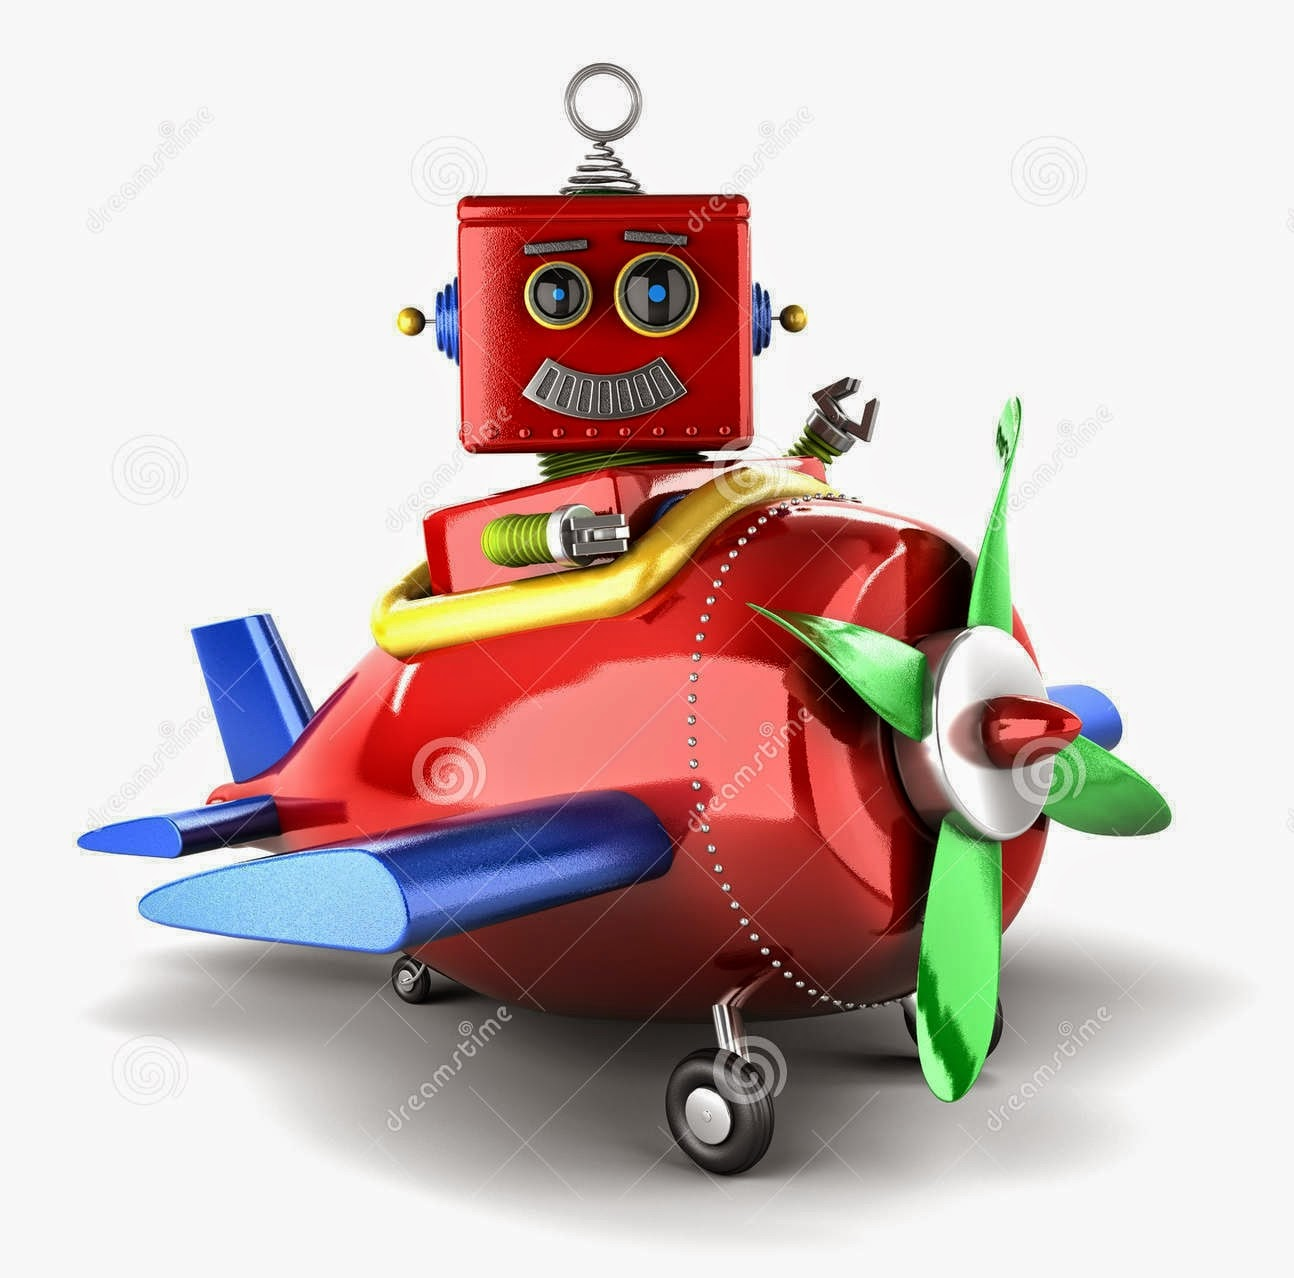 Robot Hijack A Plane in Chandigarh